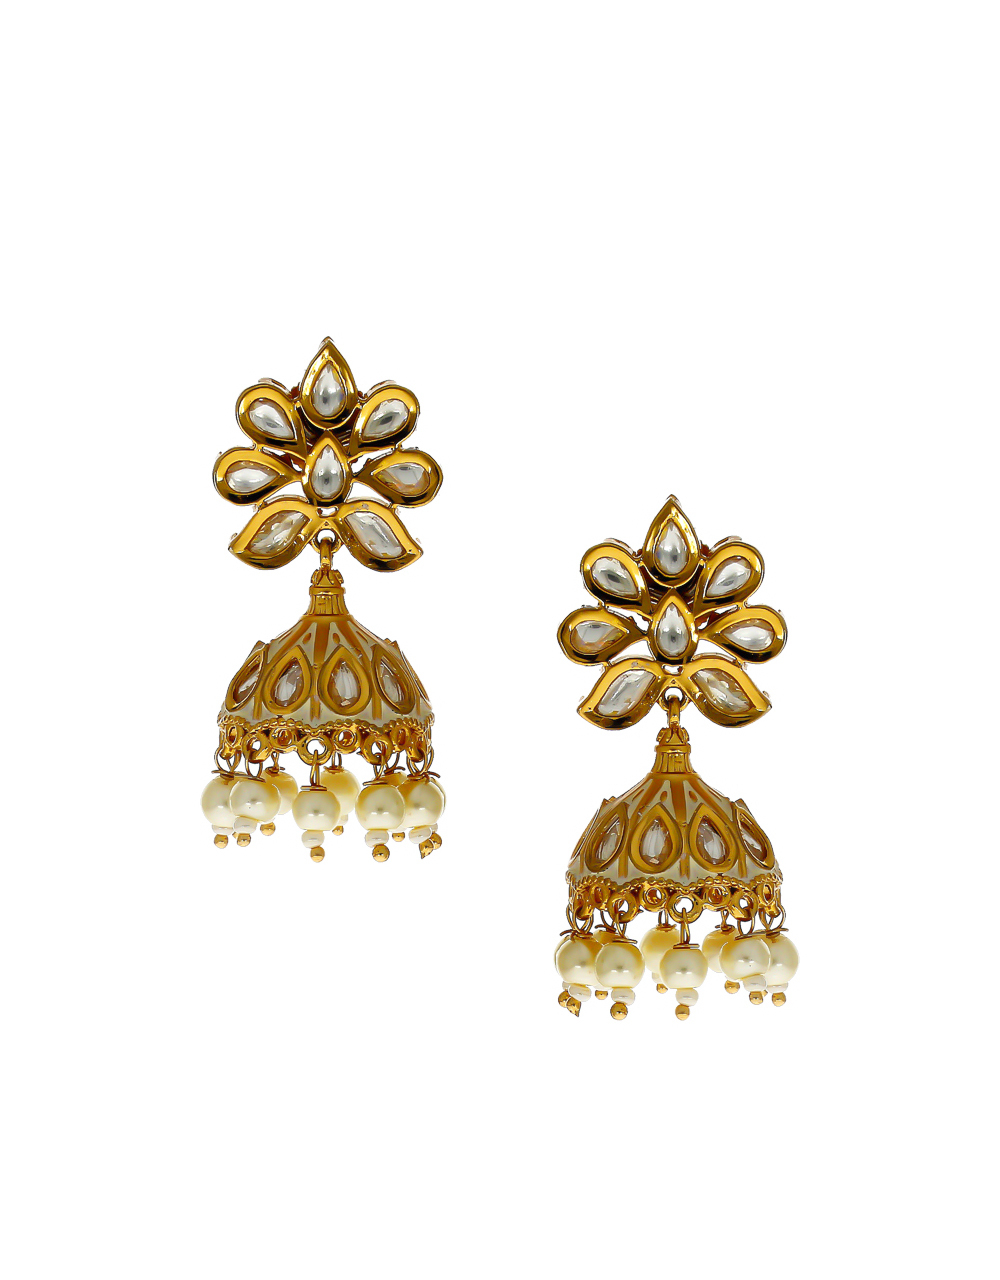 Rose Gold Finish Studded With Stones Styled With Pearls Beads Jhumki Earrings